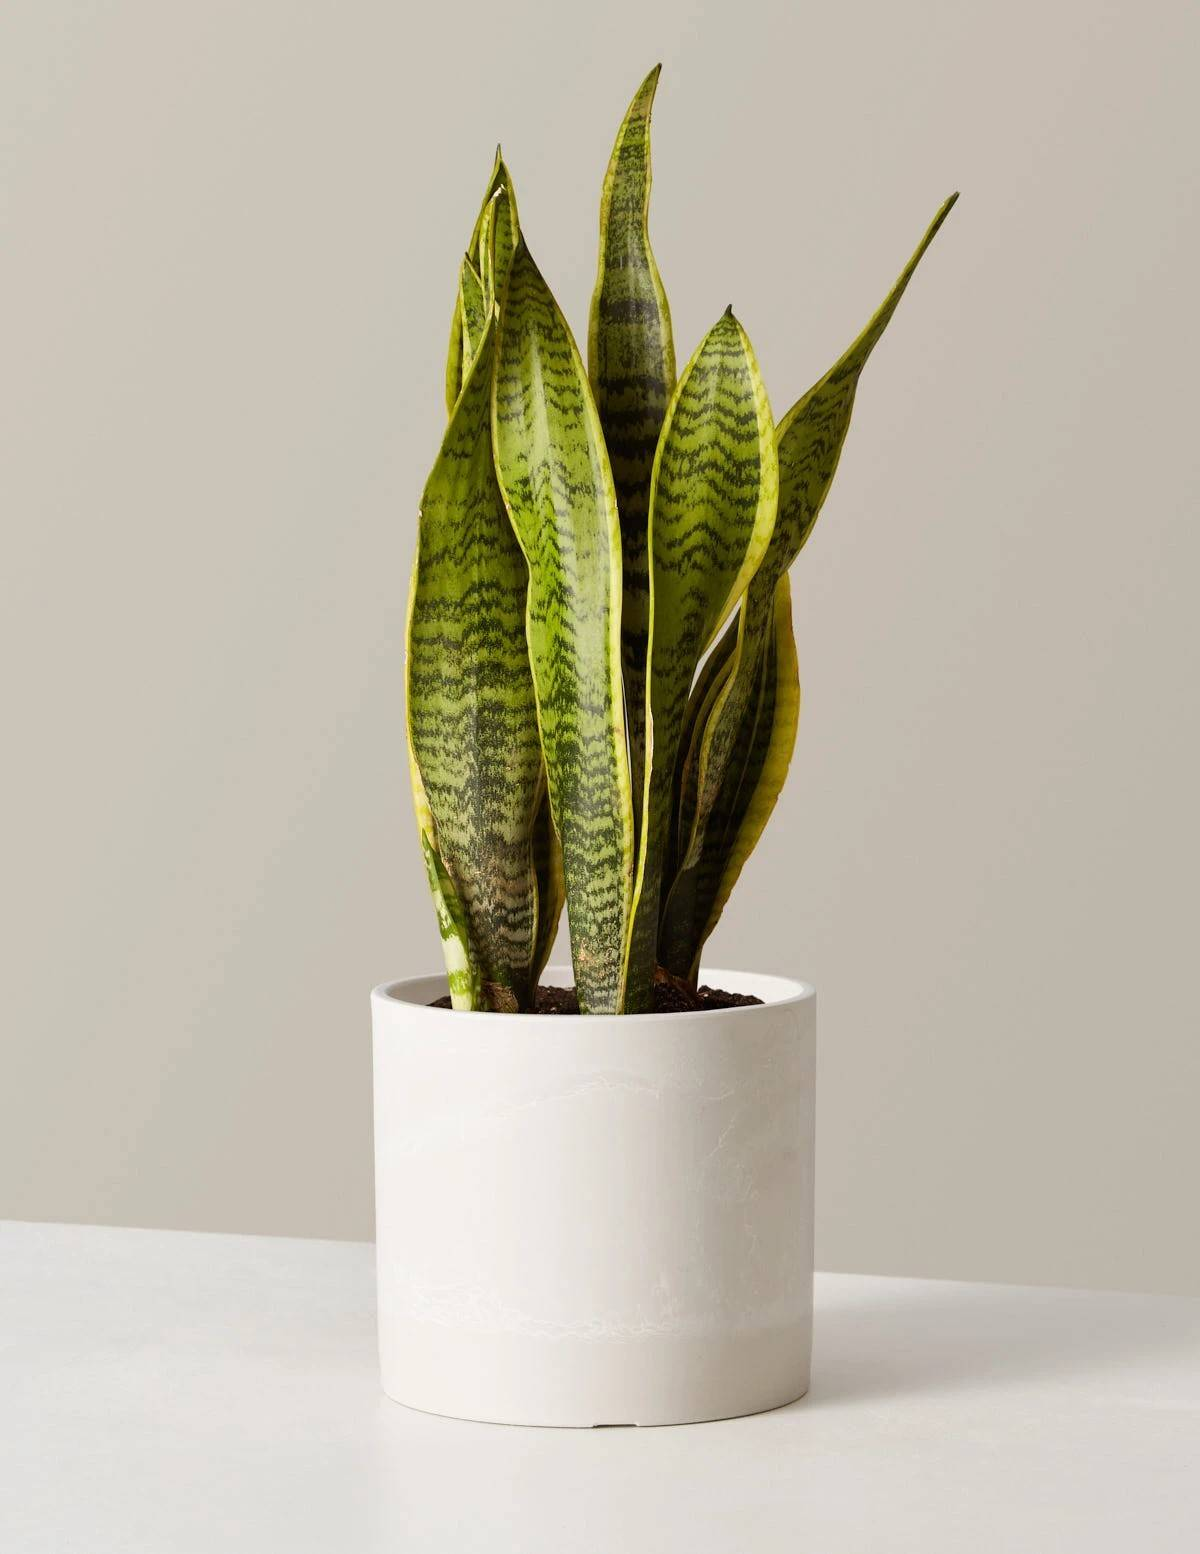 Popular Houseplants that You Can Manage to Keep Alive